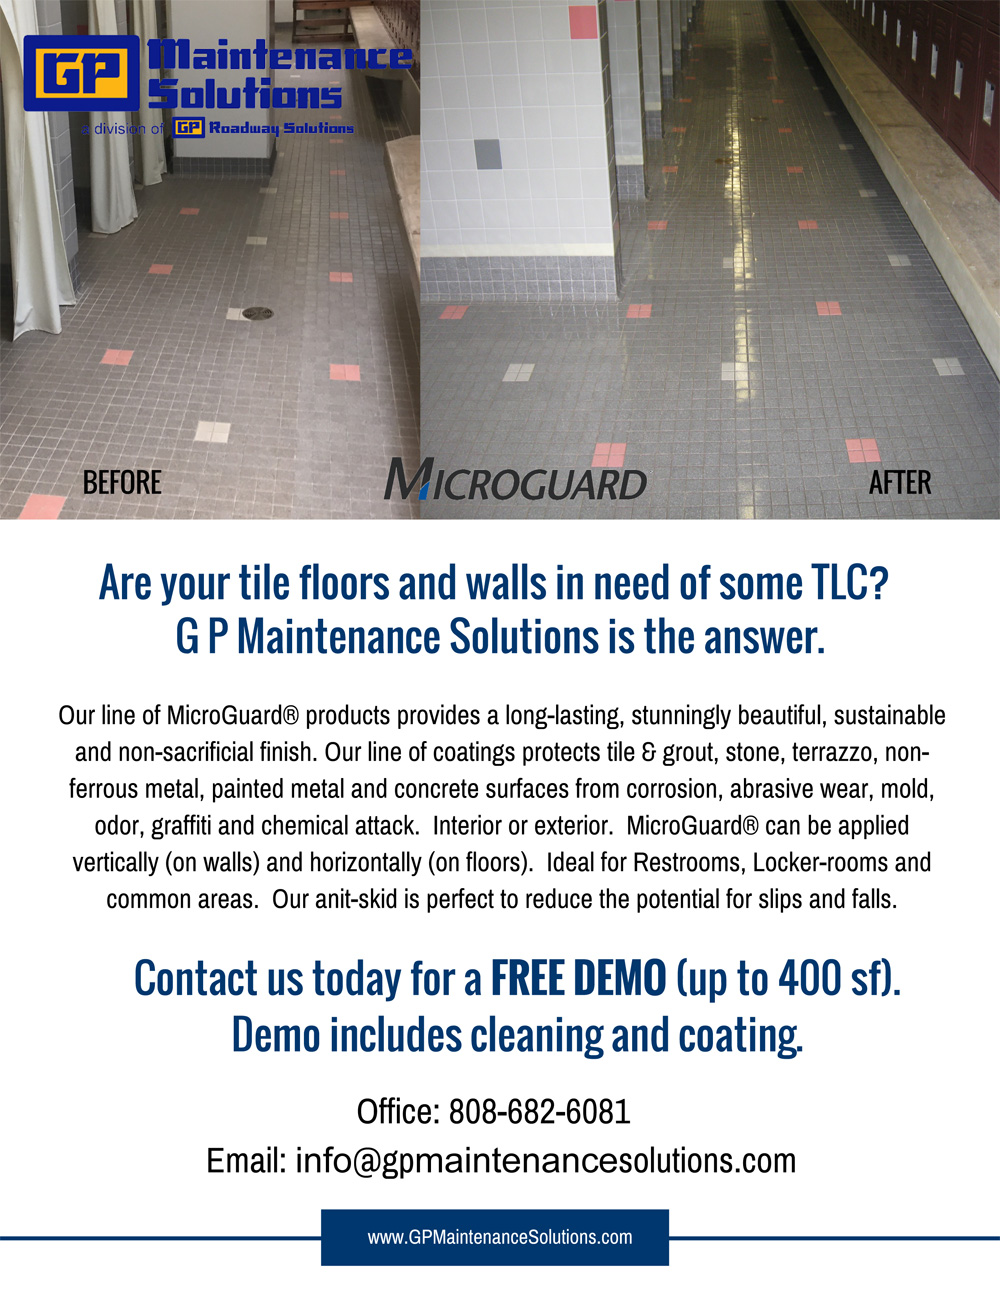 tile-maintenance-free-demo-flyer-jk.jpg